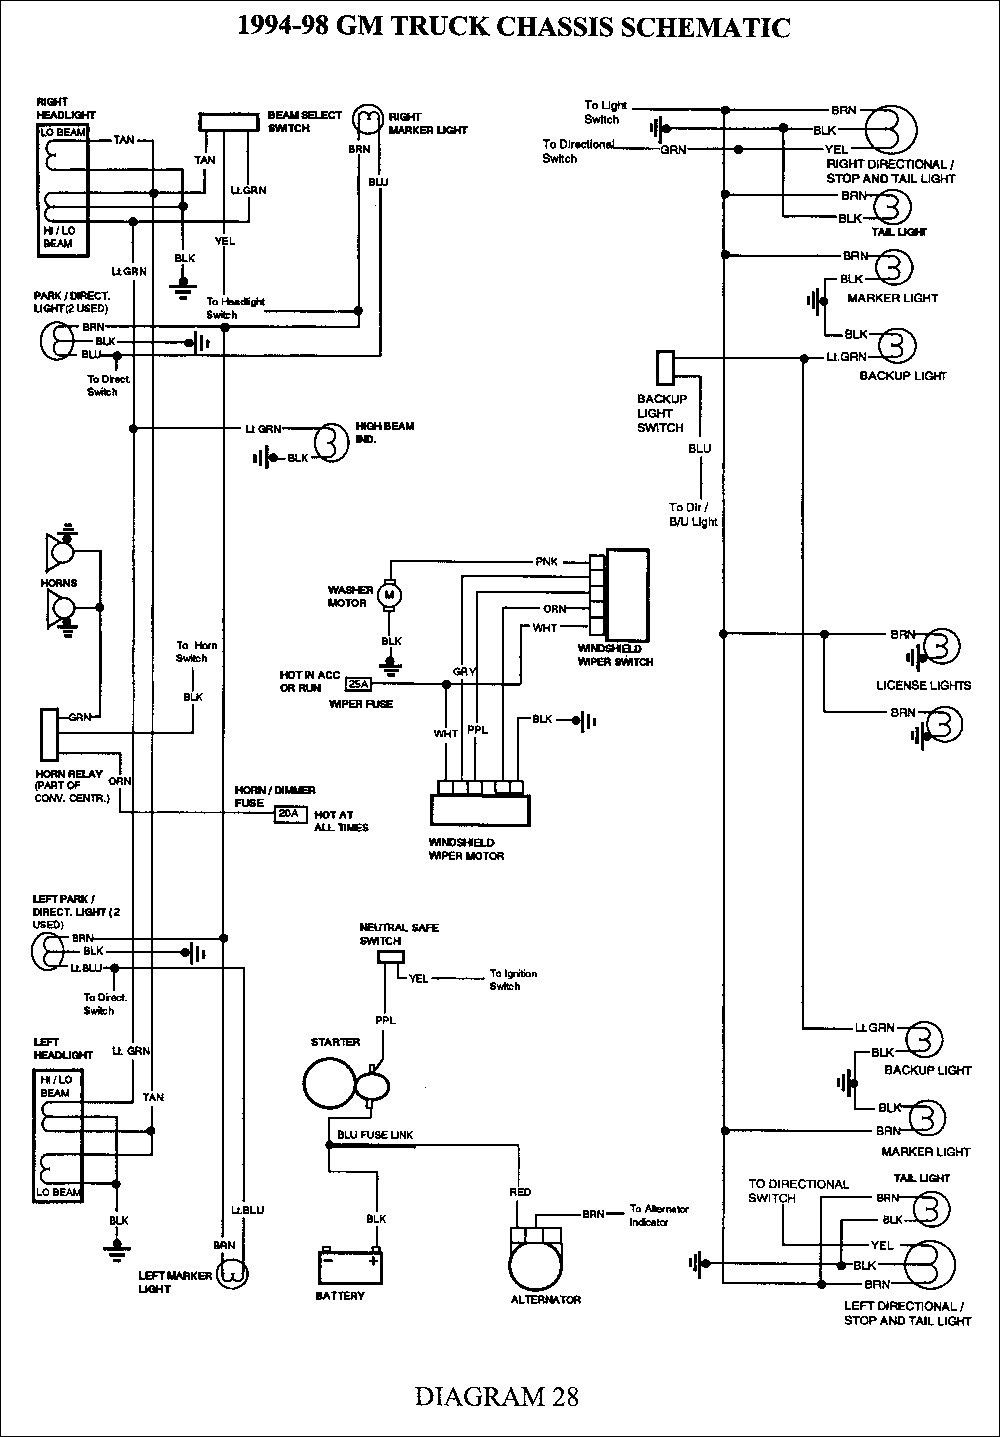 C4500 Tail Light Wiring Diagram. 2004 chevy c4500 wiring diagram. repair  guides. pin by diagram bacamajalah on wiring samples trailer. looking for wiring  diagram for a 98 gmc 4500 isuzu npr. rogerA.2002-acura-tl-radio.info. All Rights Reserved.